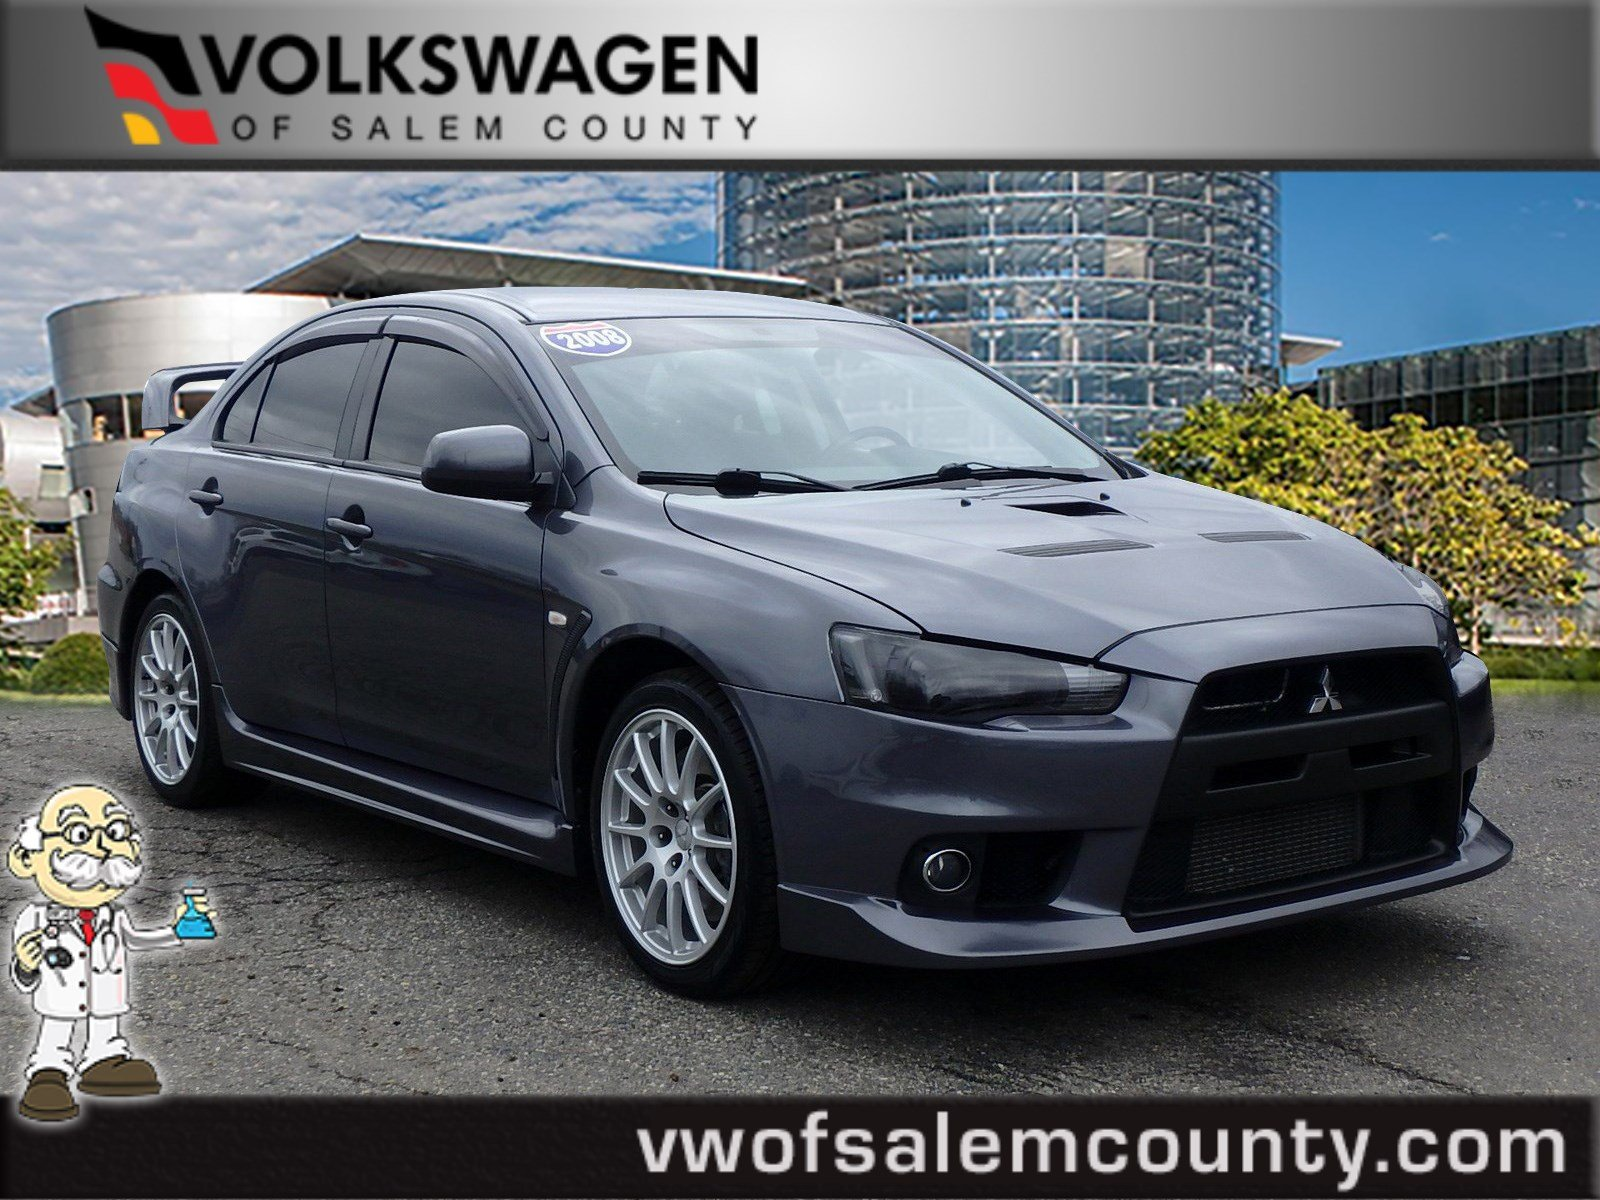 Pre-Owned 2008 Mitsubishi Lancer Evolution GSR